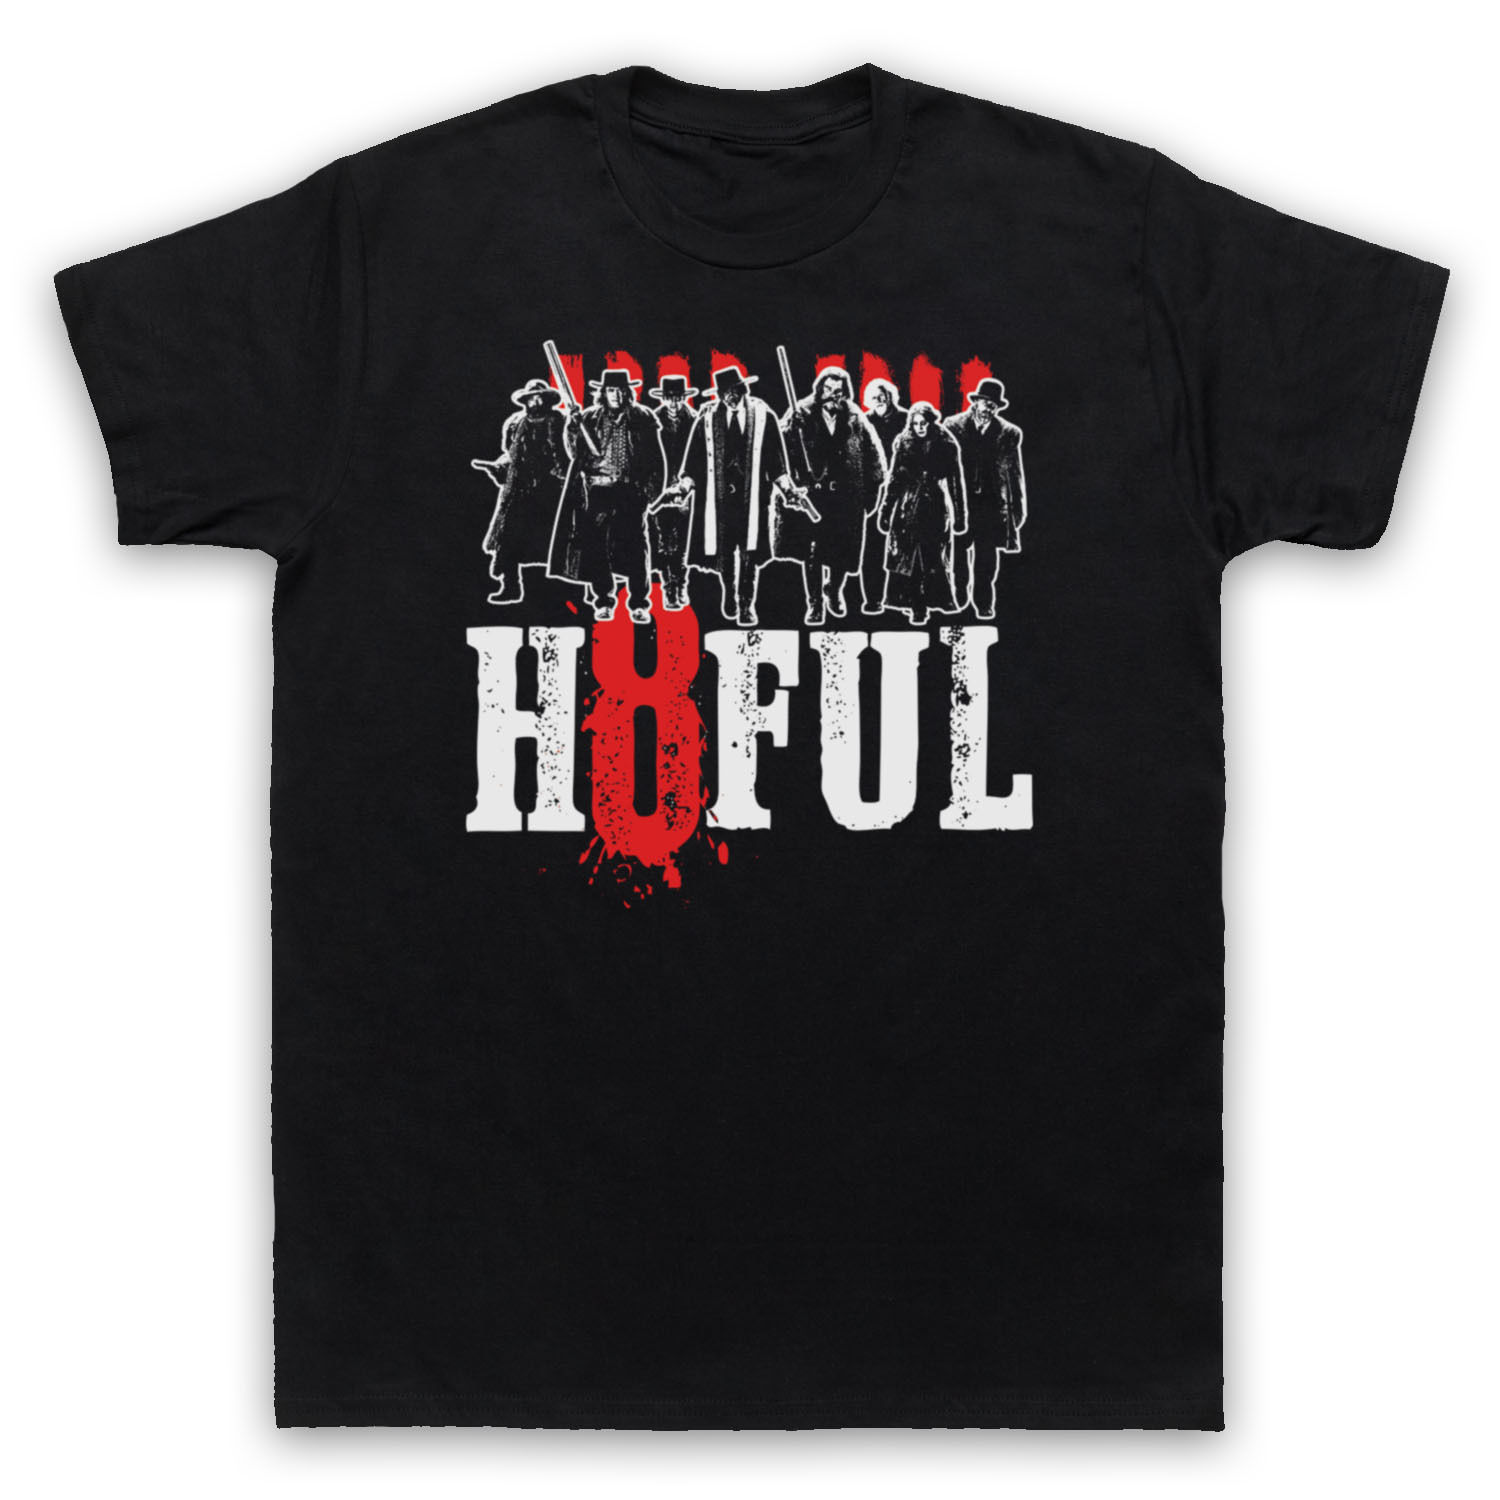 hateful-unofficial-eight-western-h8ful-font-b-tarantino-b-font-t-shirt-adults-print-t-shirt-men-summer-style-fashion-top-tee